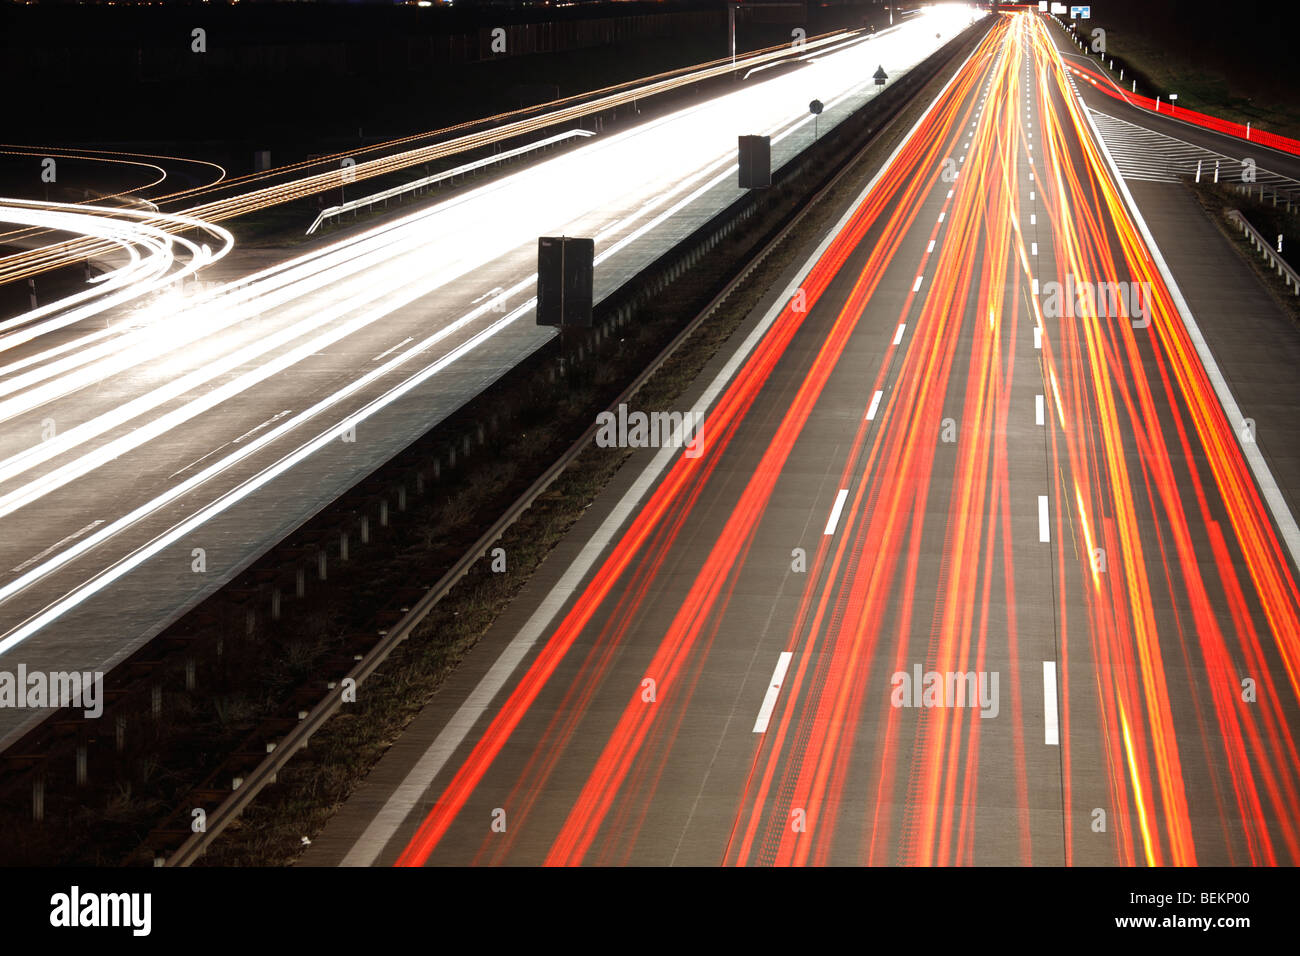 light trails at a motorway, Germany - Stock Image